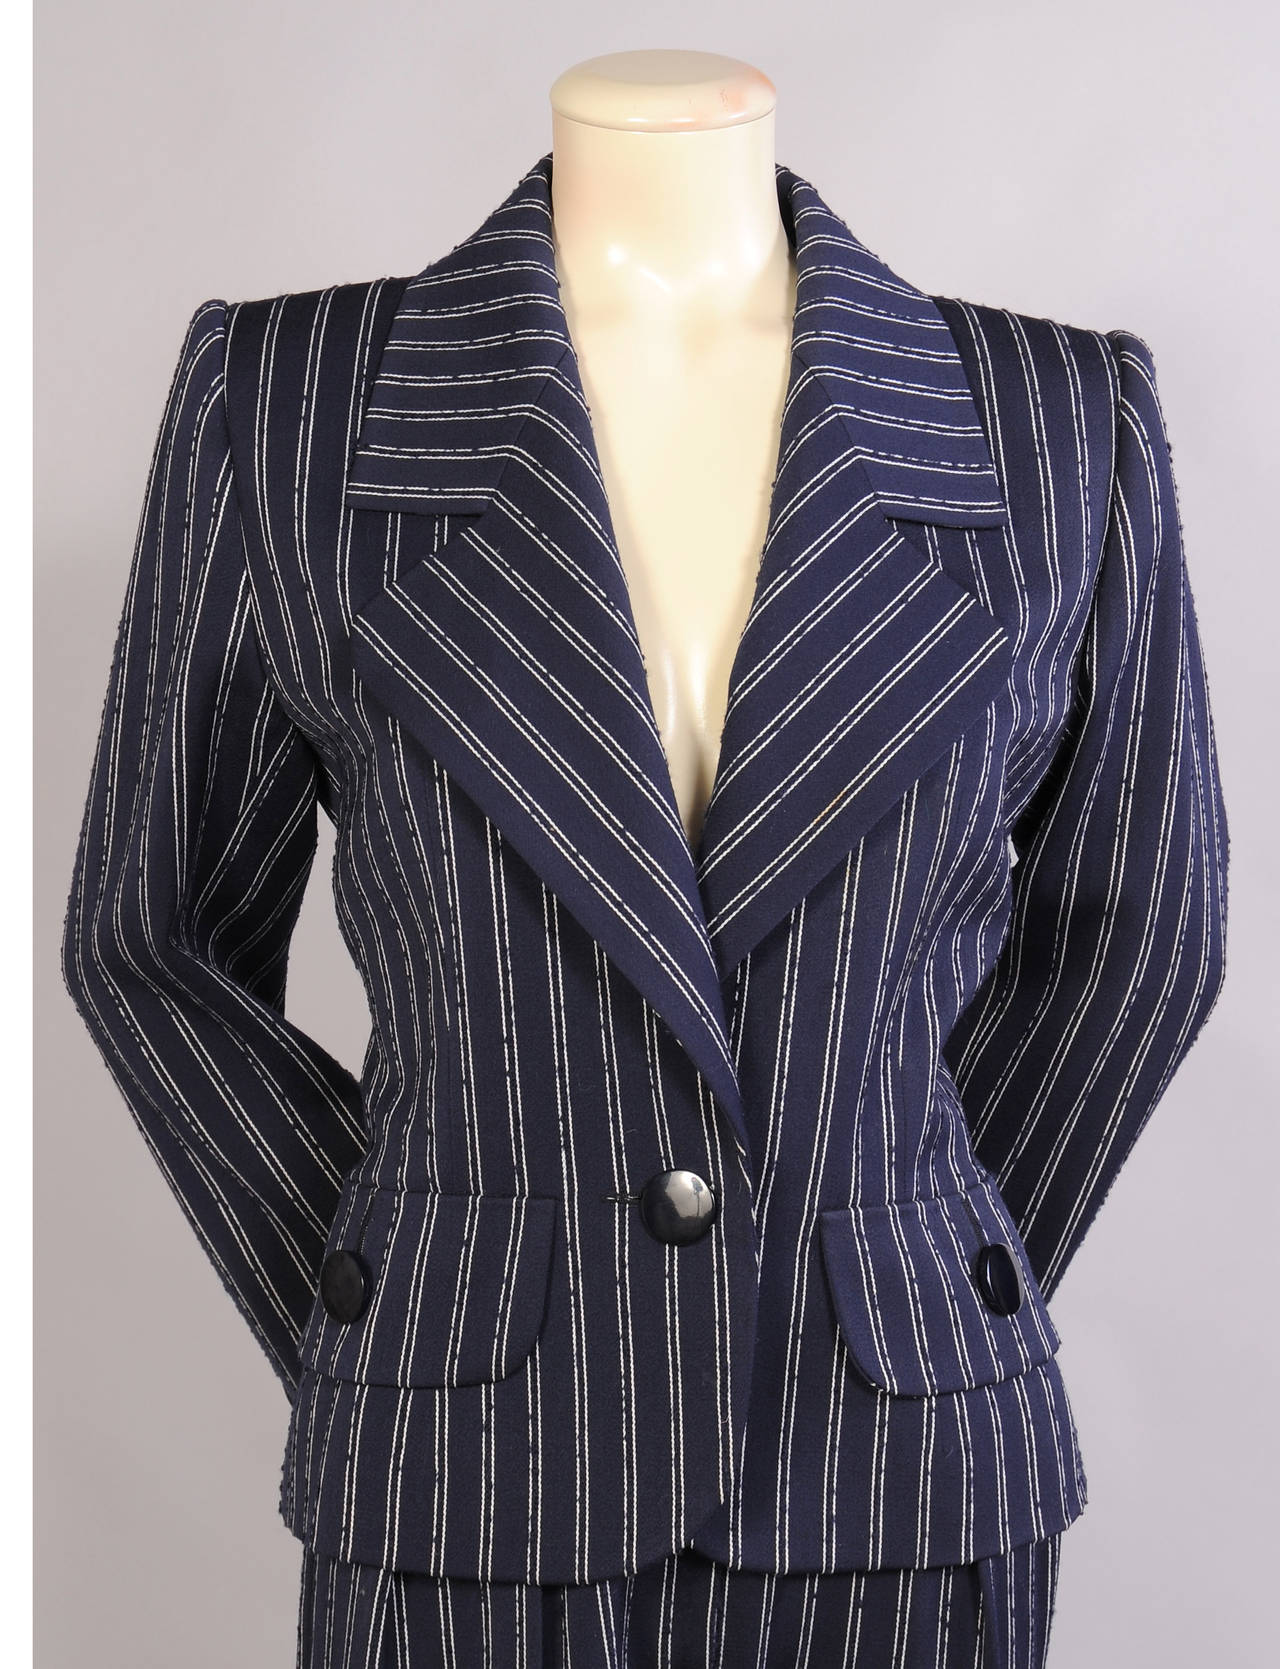 Classic navy and white broken pinstriped wool in a spring weight adds an elegant touch to this trouser suit. The jacket has notched lapels, a single button closure and two hip pockets. The pants have a natural waistline and a center front zipper.